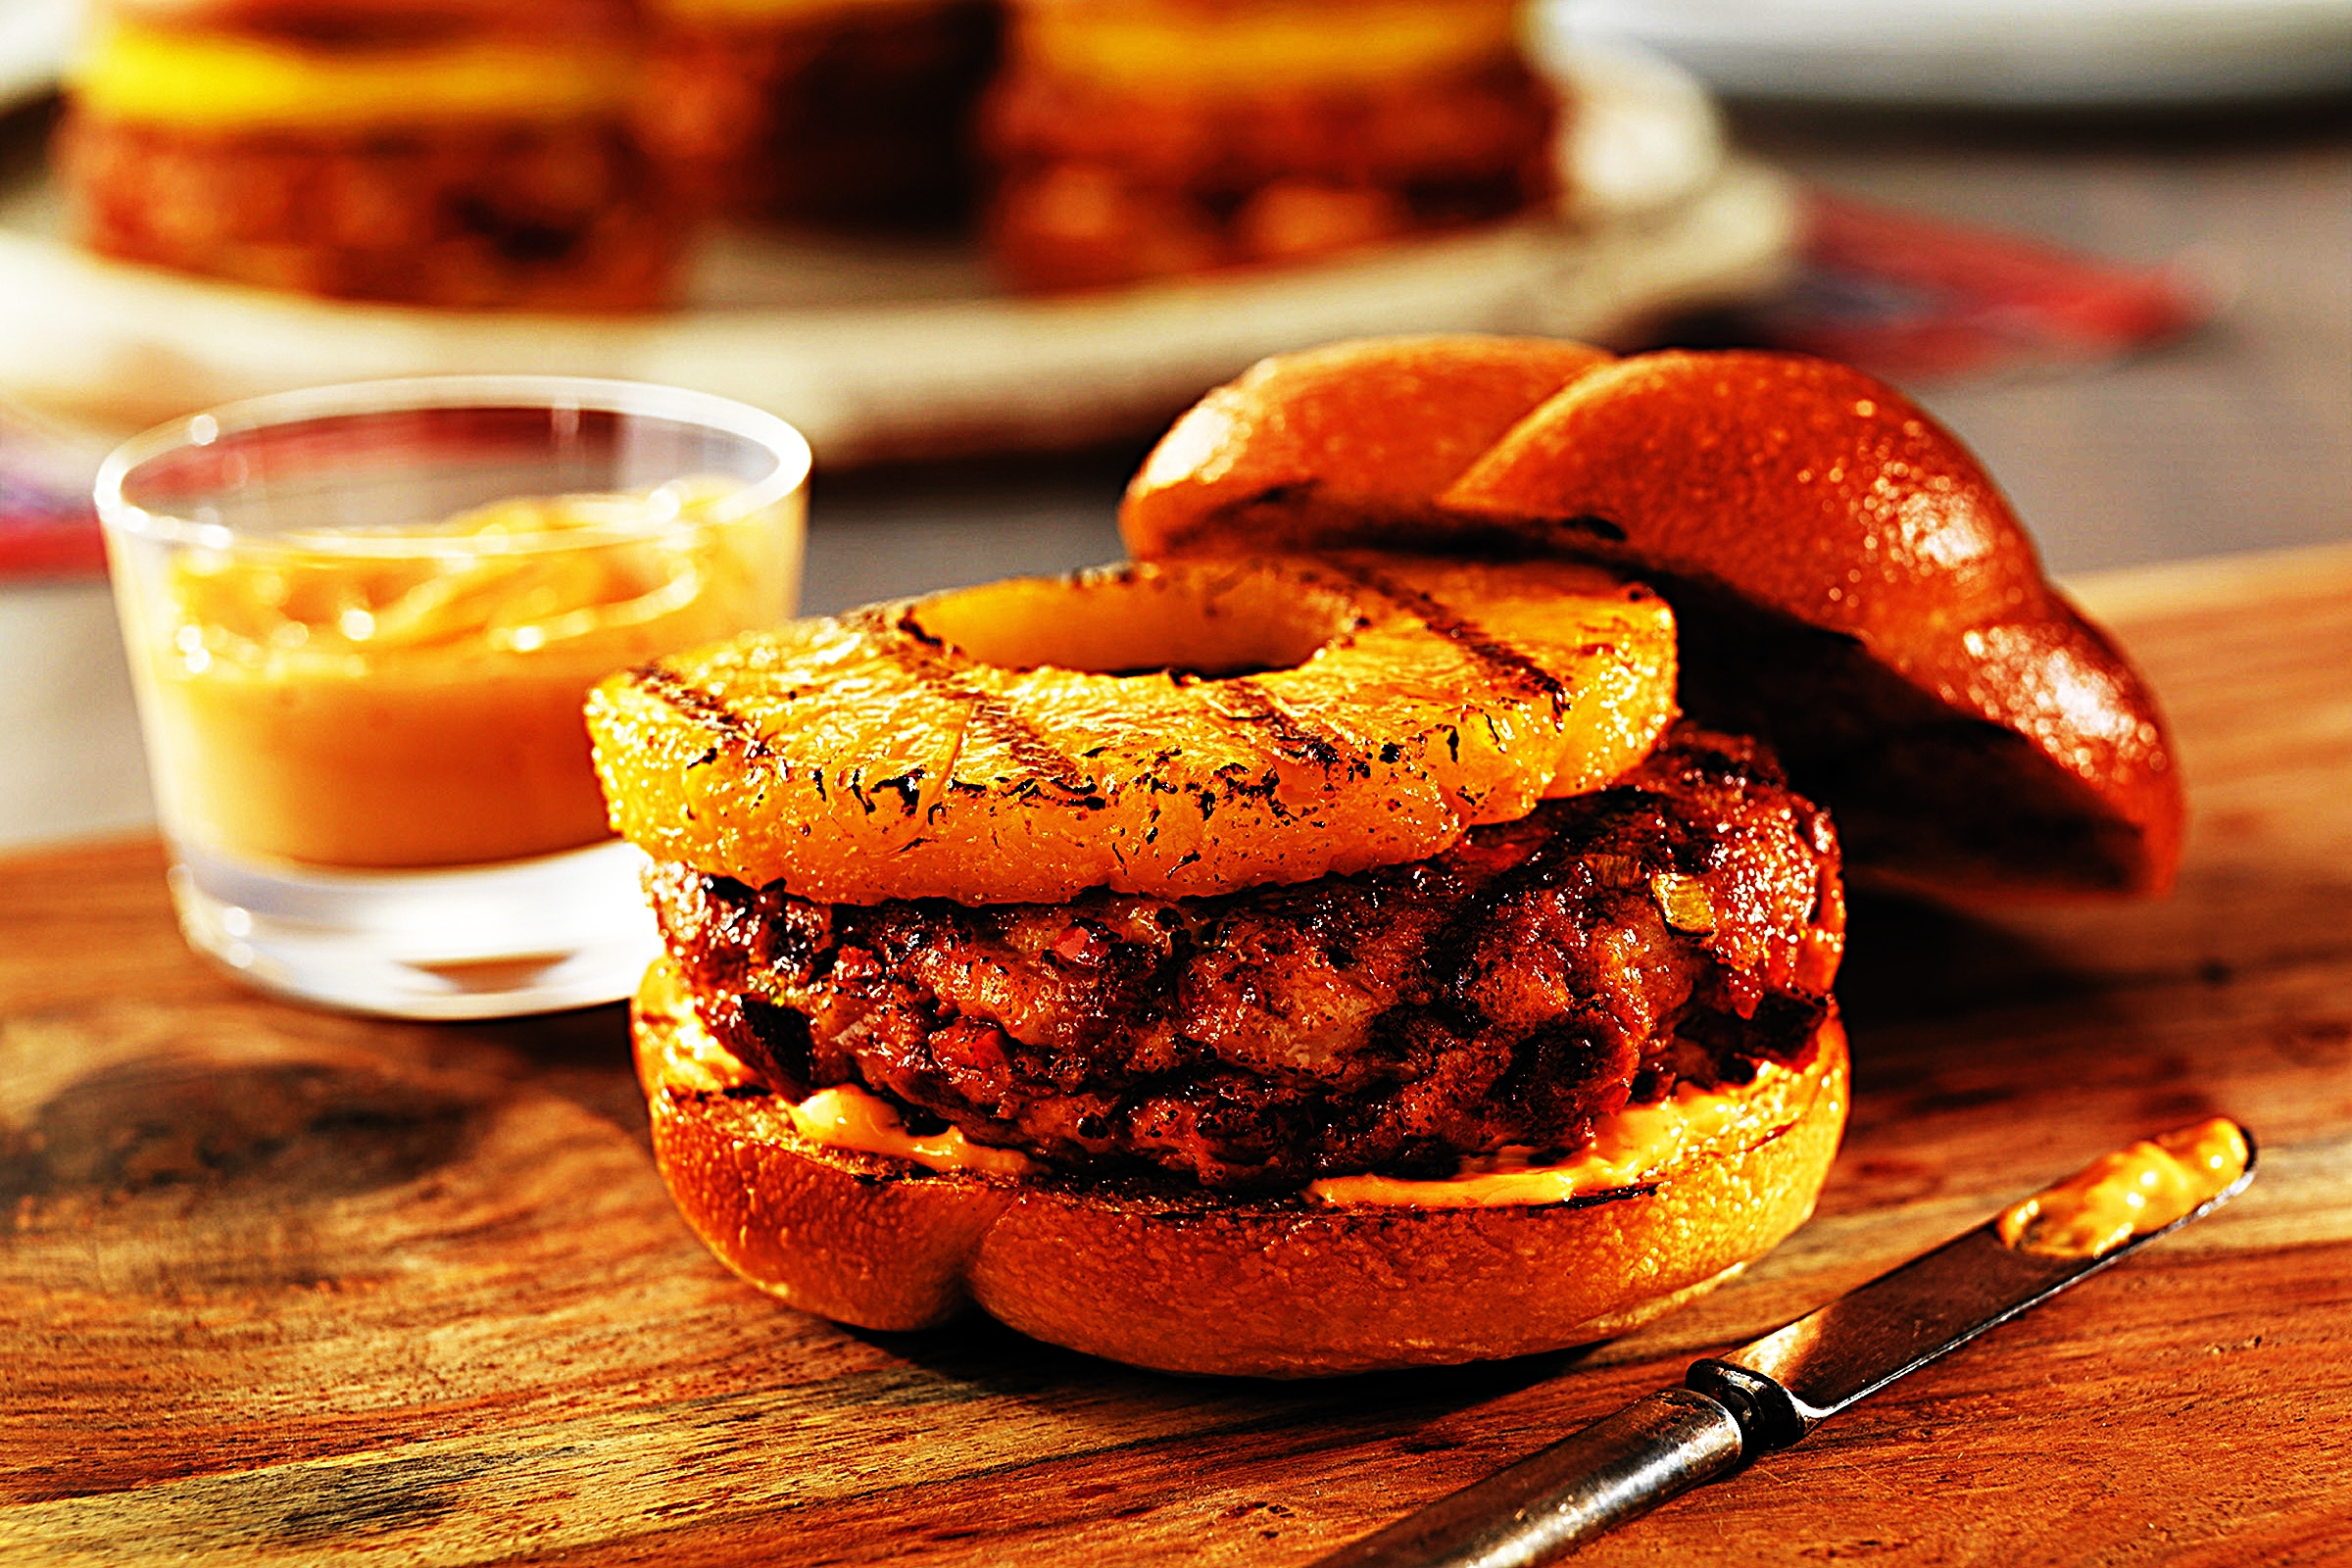 Stupid-Easy Recipe for Pork and Chorizo Burgers with Pineapple and Sriracha (#1 Top-Rated)